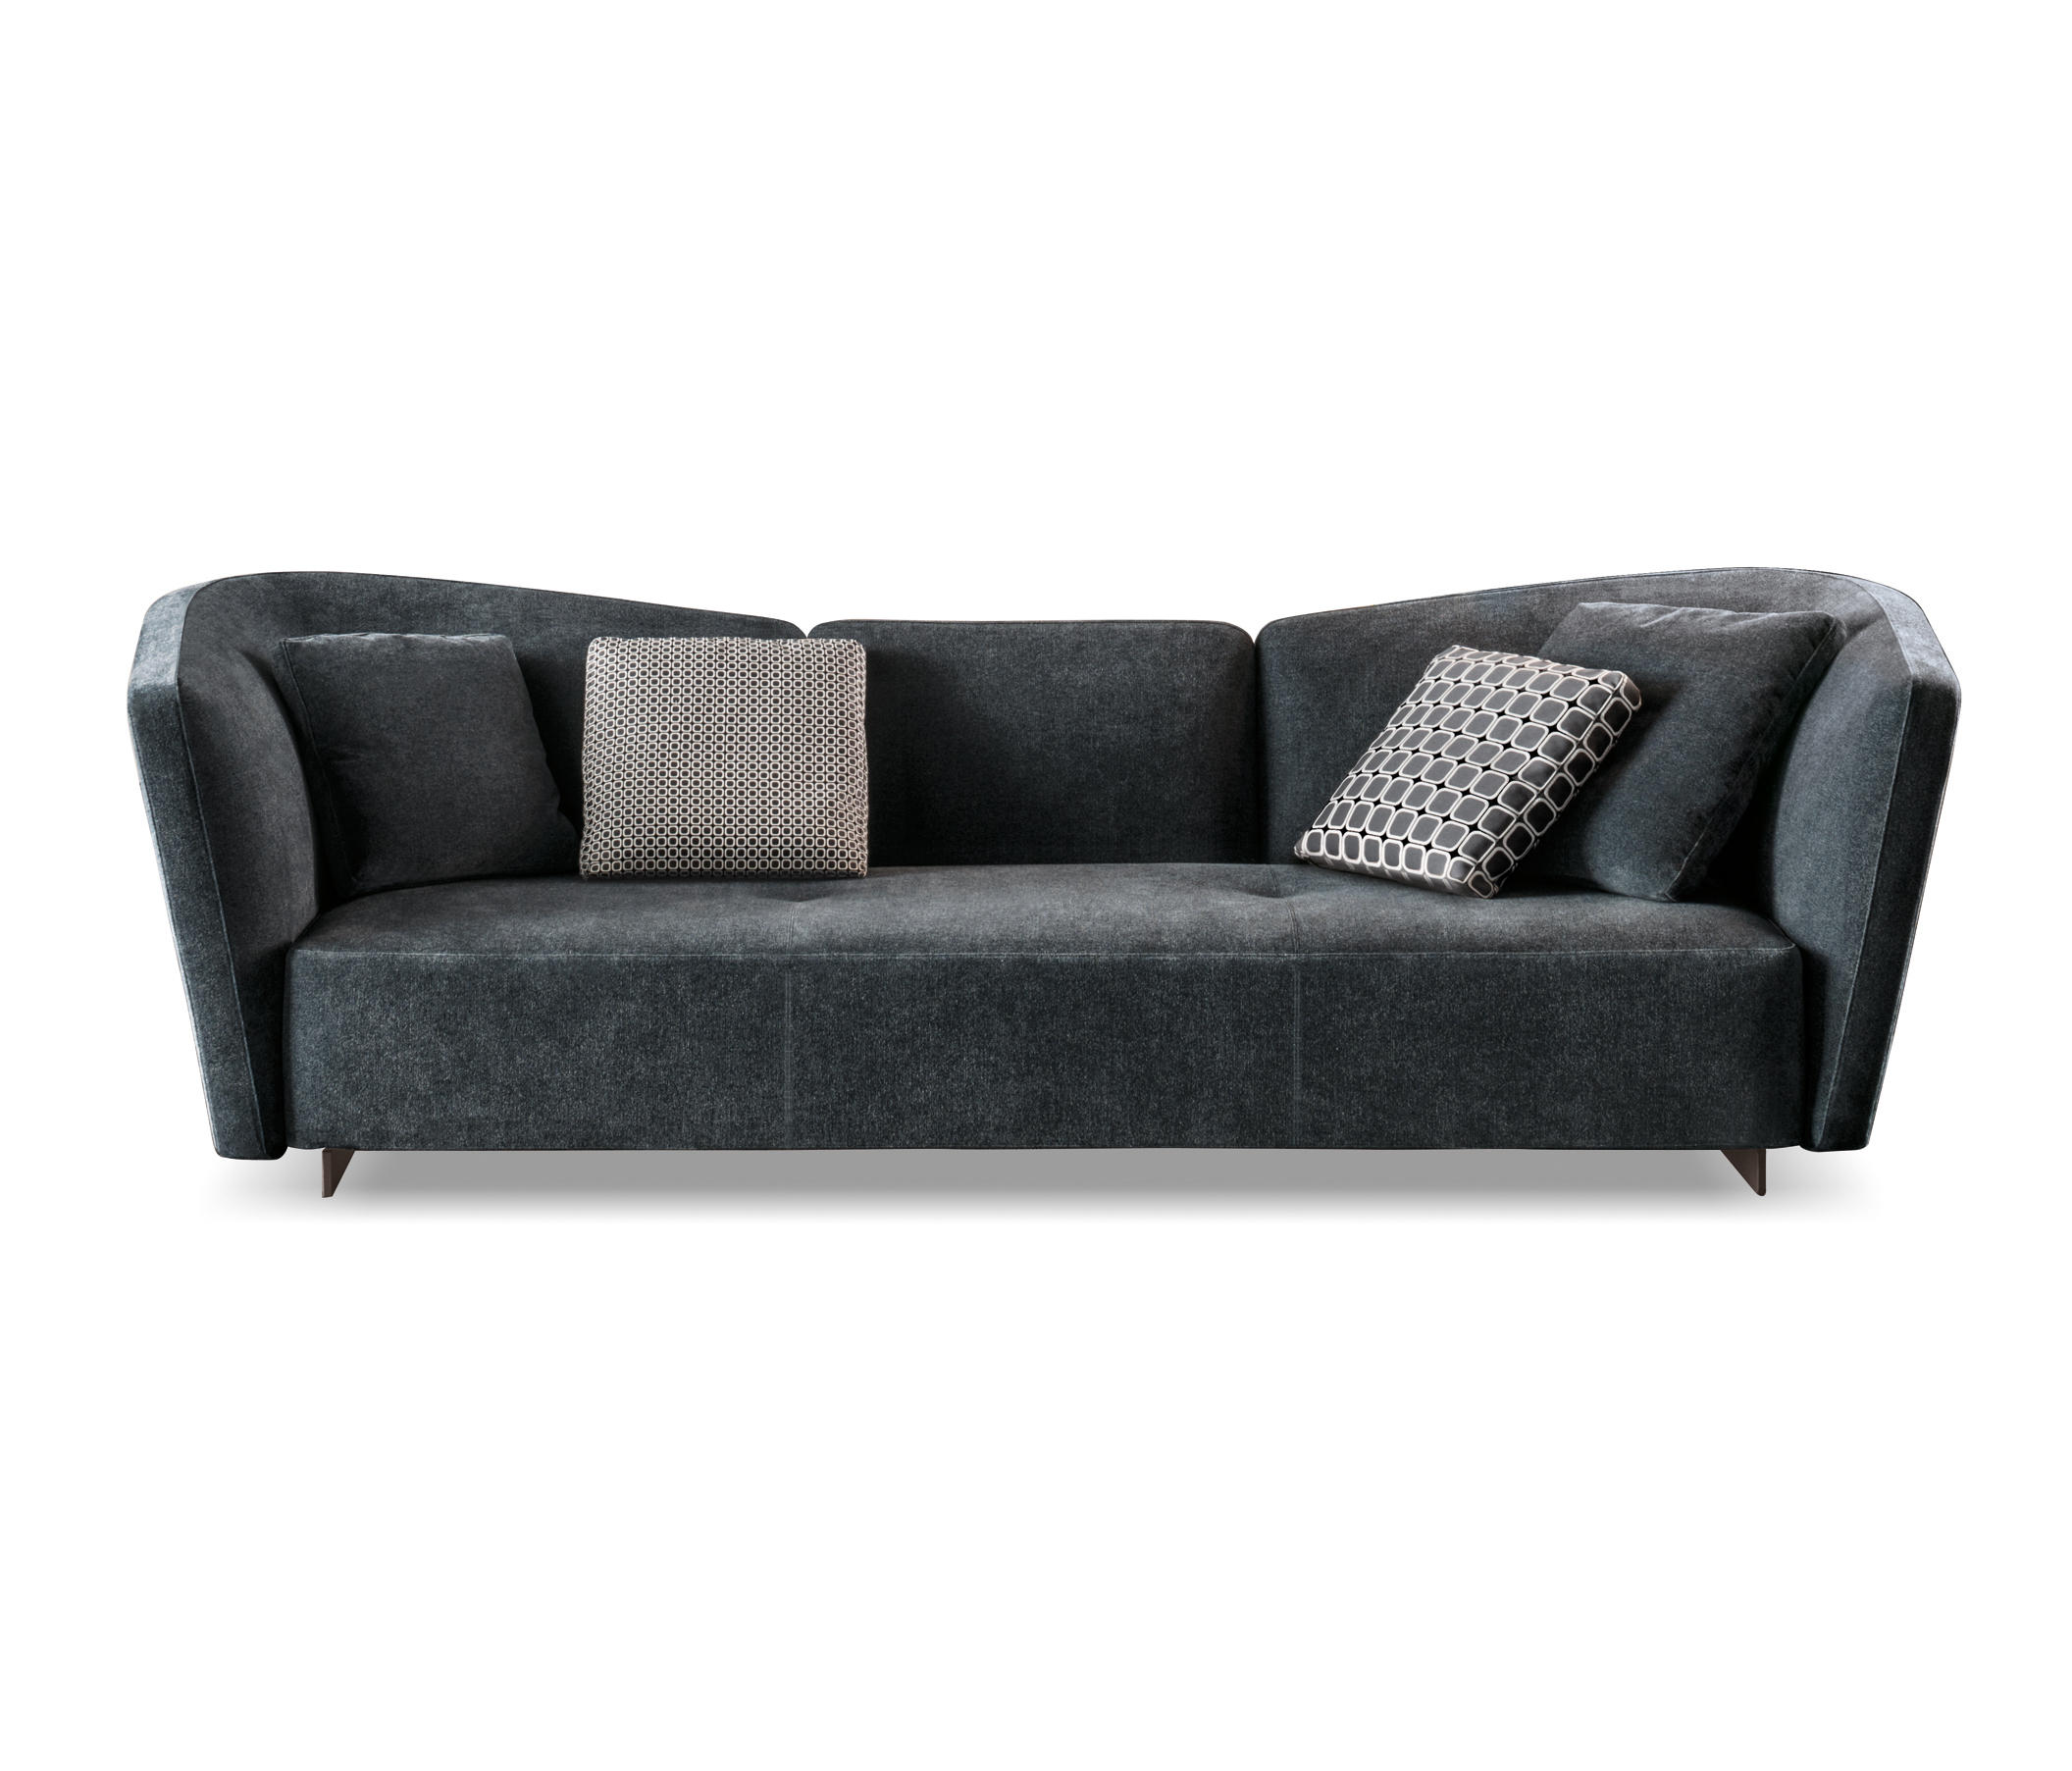 lounge seymour sofas from minotti architonic. Black Bedroom Furniture Sets. Home Design Ideas